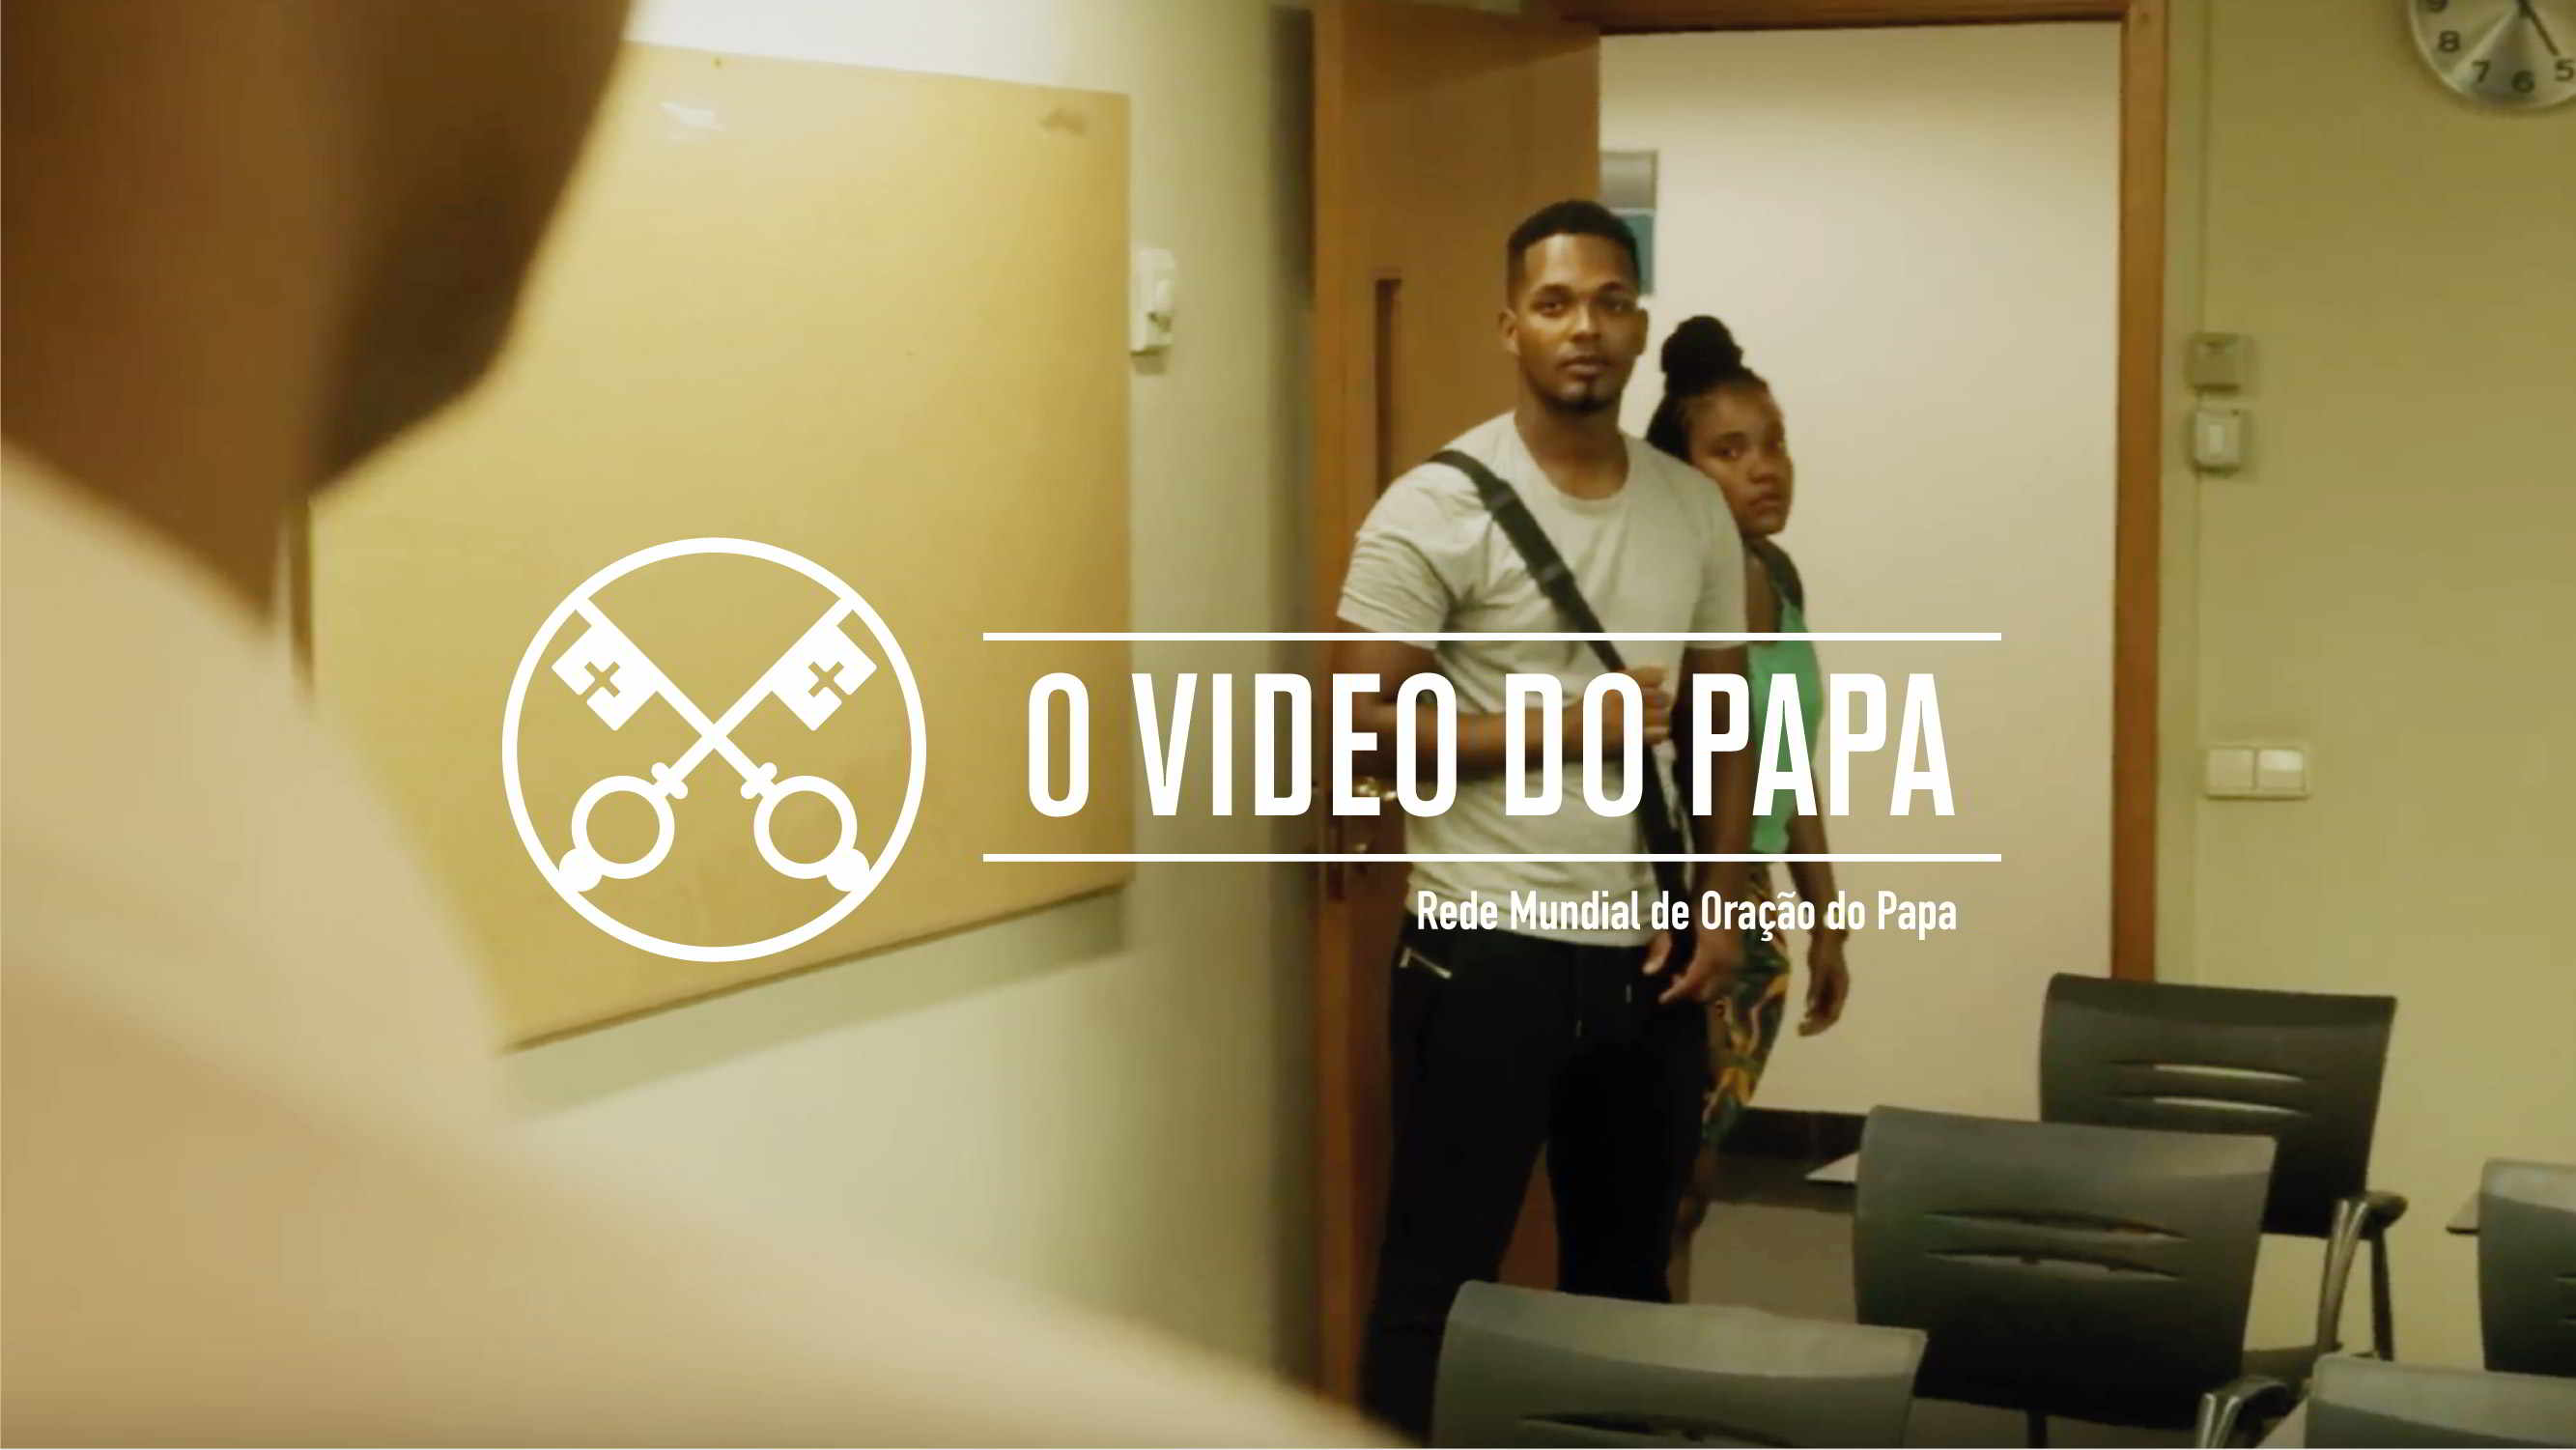 Official-Image-The-Pope-Video-9-2018-Young-People-in-Africa-5-Portuguese